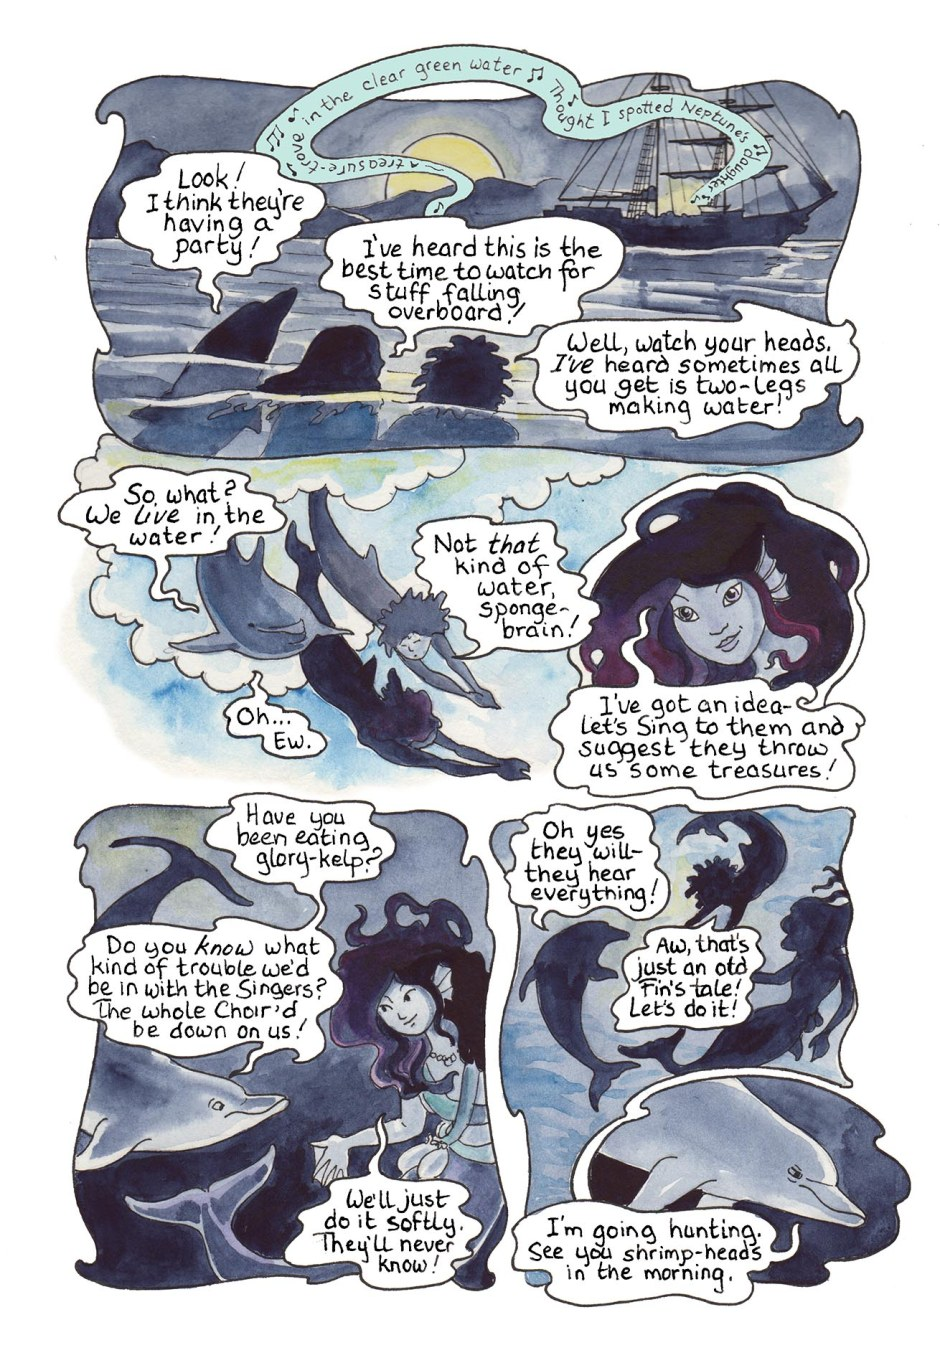 Page 59 — Party-crashers from the sea! But it seems that Fins may be smarter than Hands.